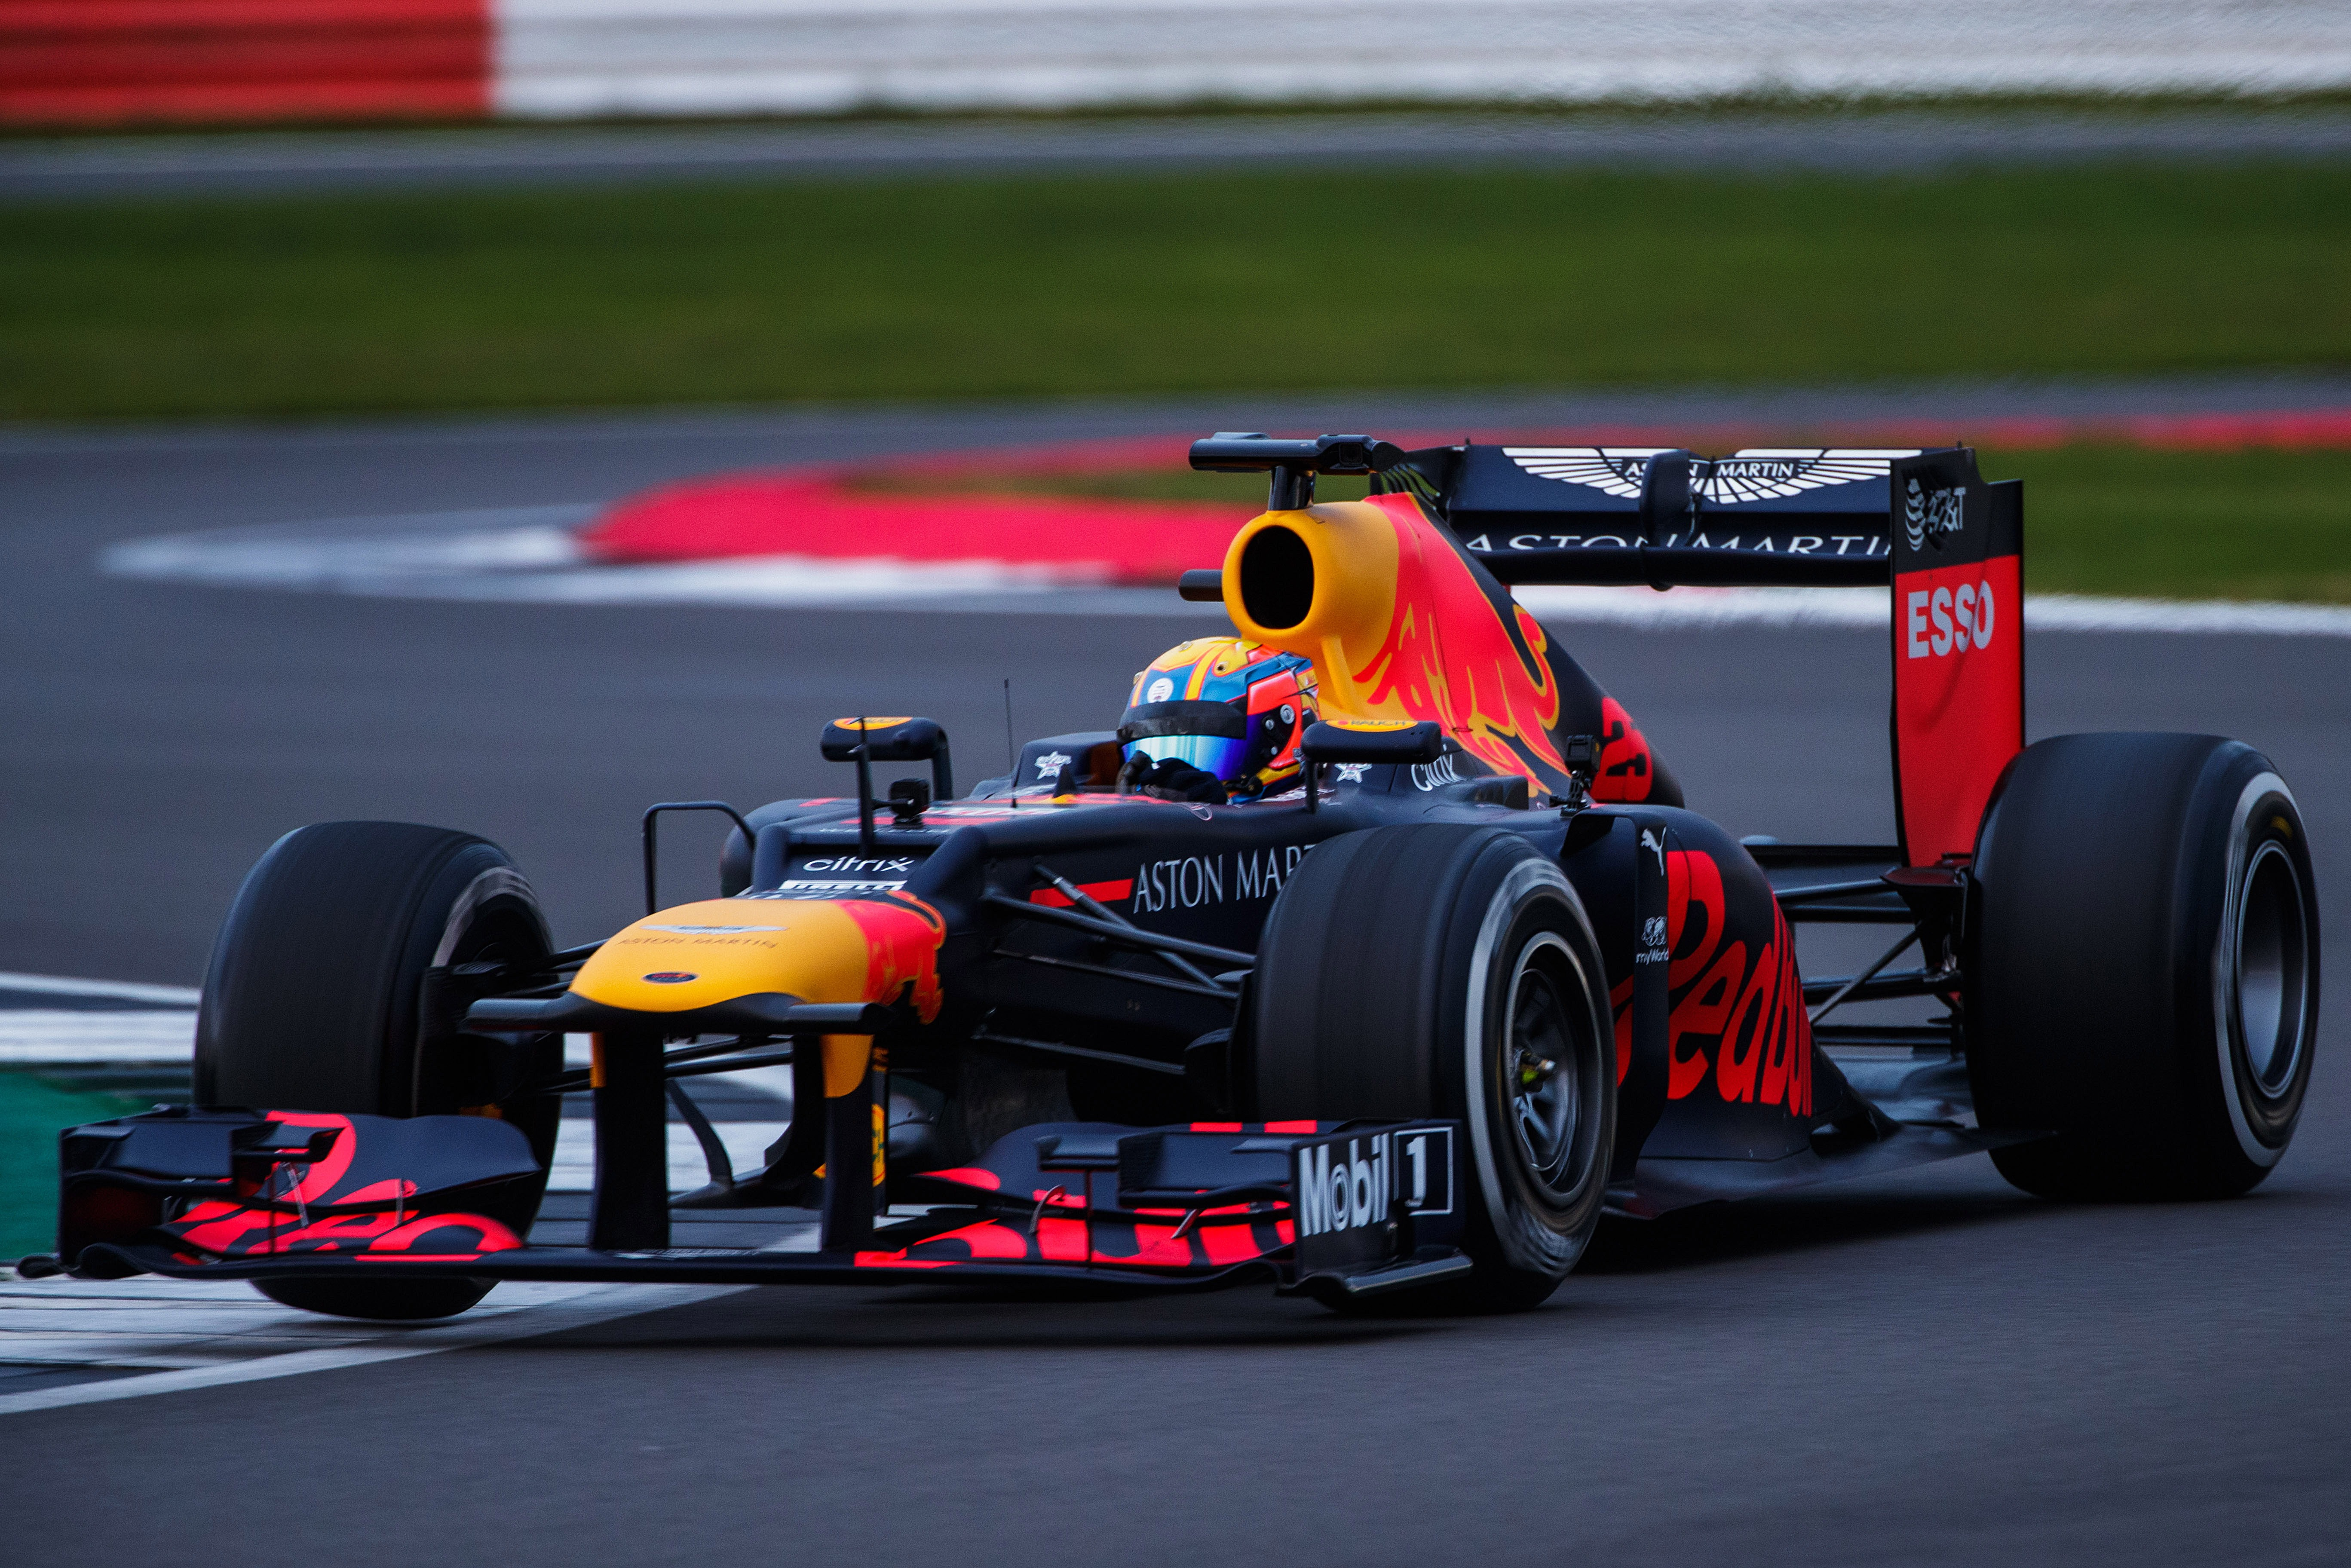 Johnathan Hoggard drove Red Bull Racing's RB8 at Silverstone last year after winning the 2019 Aston Martin Autosport BRDC Young Driver of the Year Award.